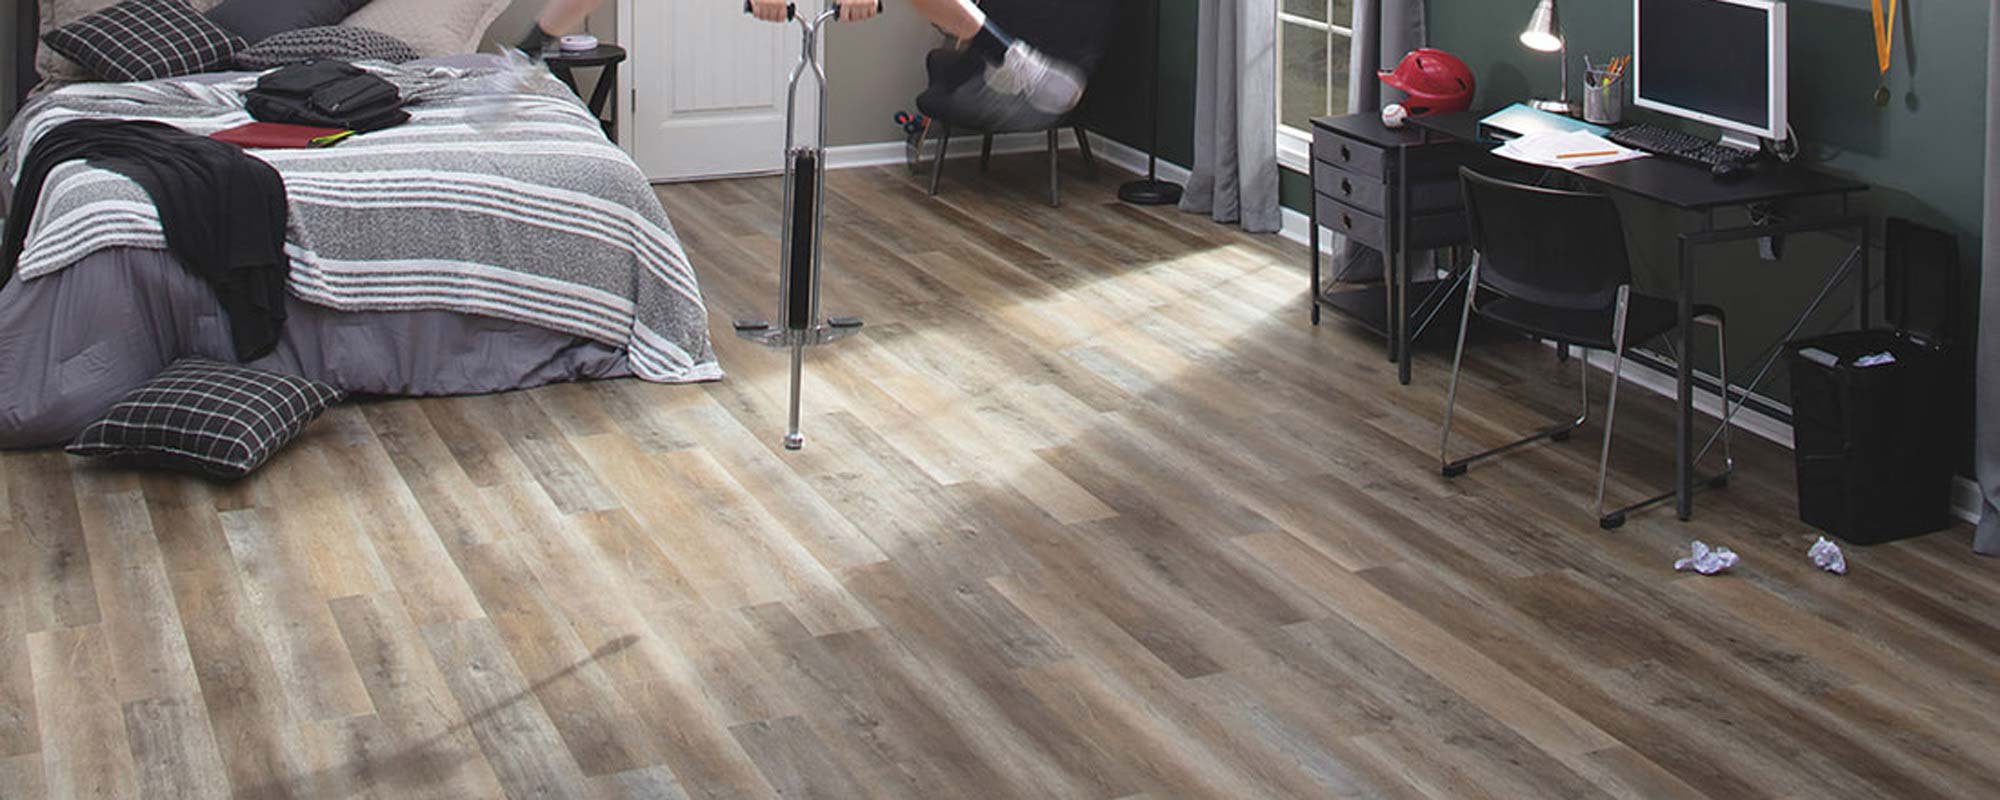 Luxury Vinyl Flooring from Classic Wood Flooring